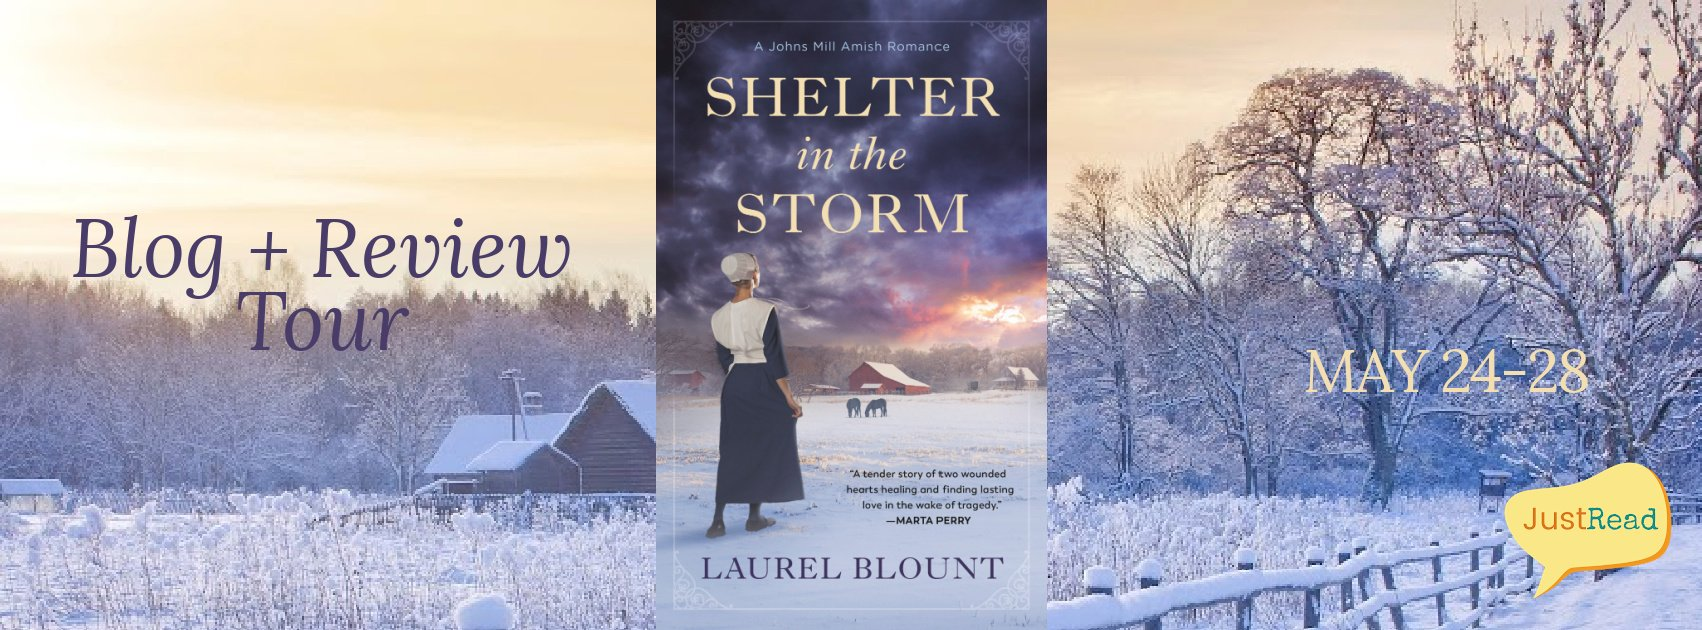 Shelter in the Storm JustRead Blog + Review Tour